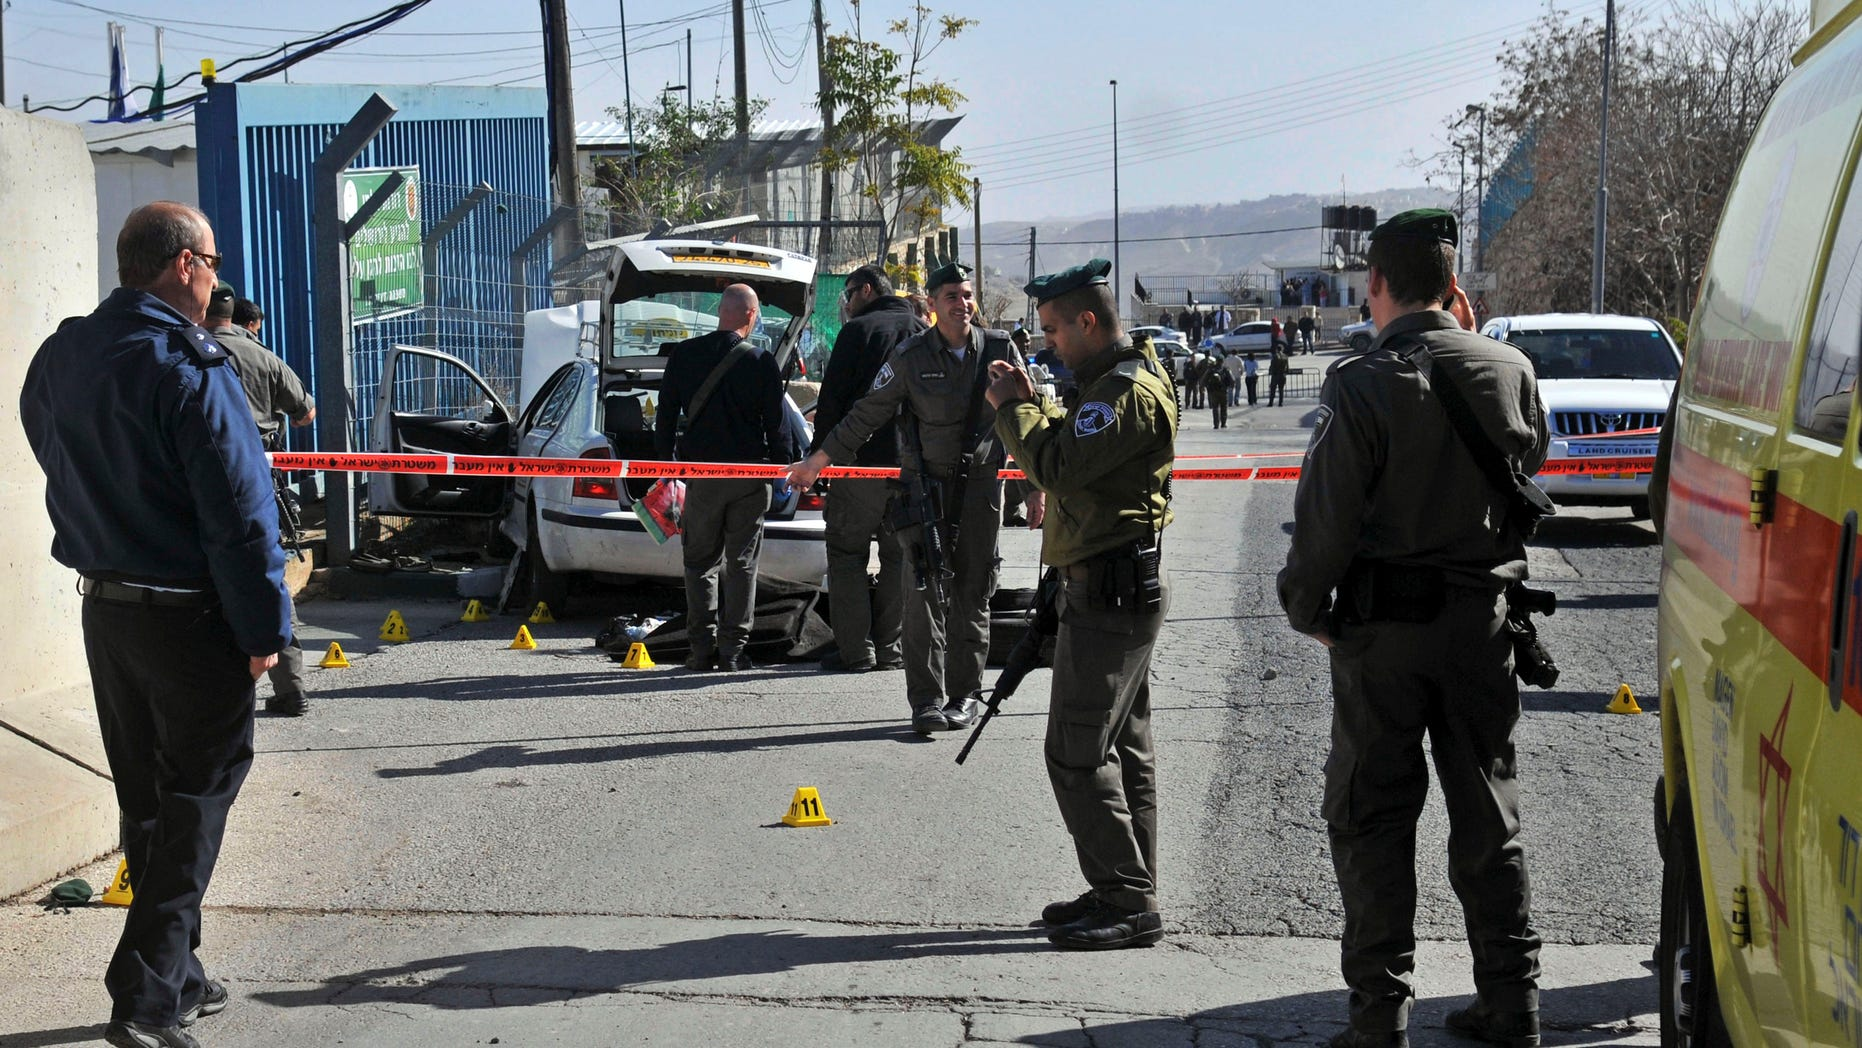 Israeli police cordon off the area next to the site of an attempted attack outside a police station in Jabel Mukaber, in east Jerusalem, Sunday, Dec. 23, 2012. According to Israeli police spokesman and Palestinian sources an Arab taxi driver tried to drive into the police station and was prevented by border policemen who fired shots to stop the vehicle. Both the driver and a police officer were lightly injured in the incident. (AP Photo/Mahmoud Ilean)